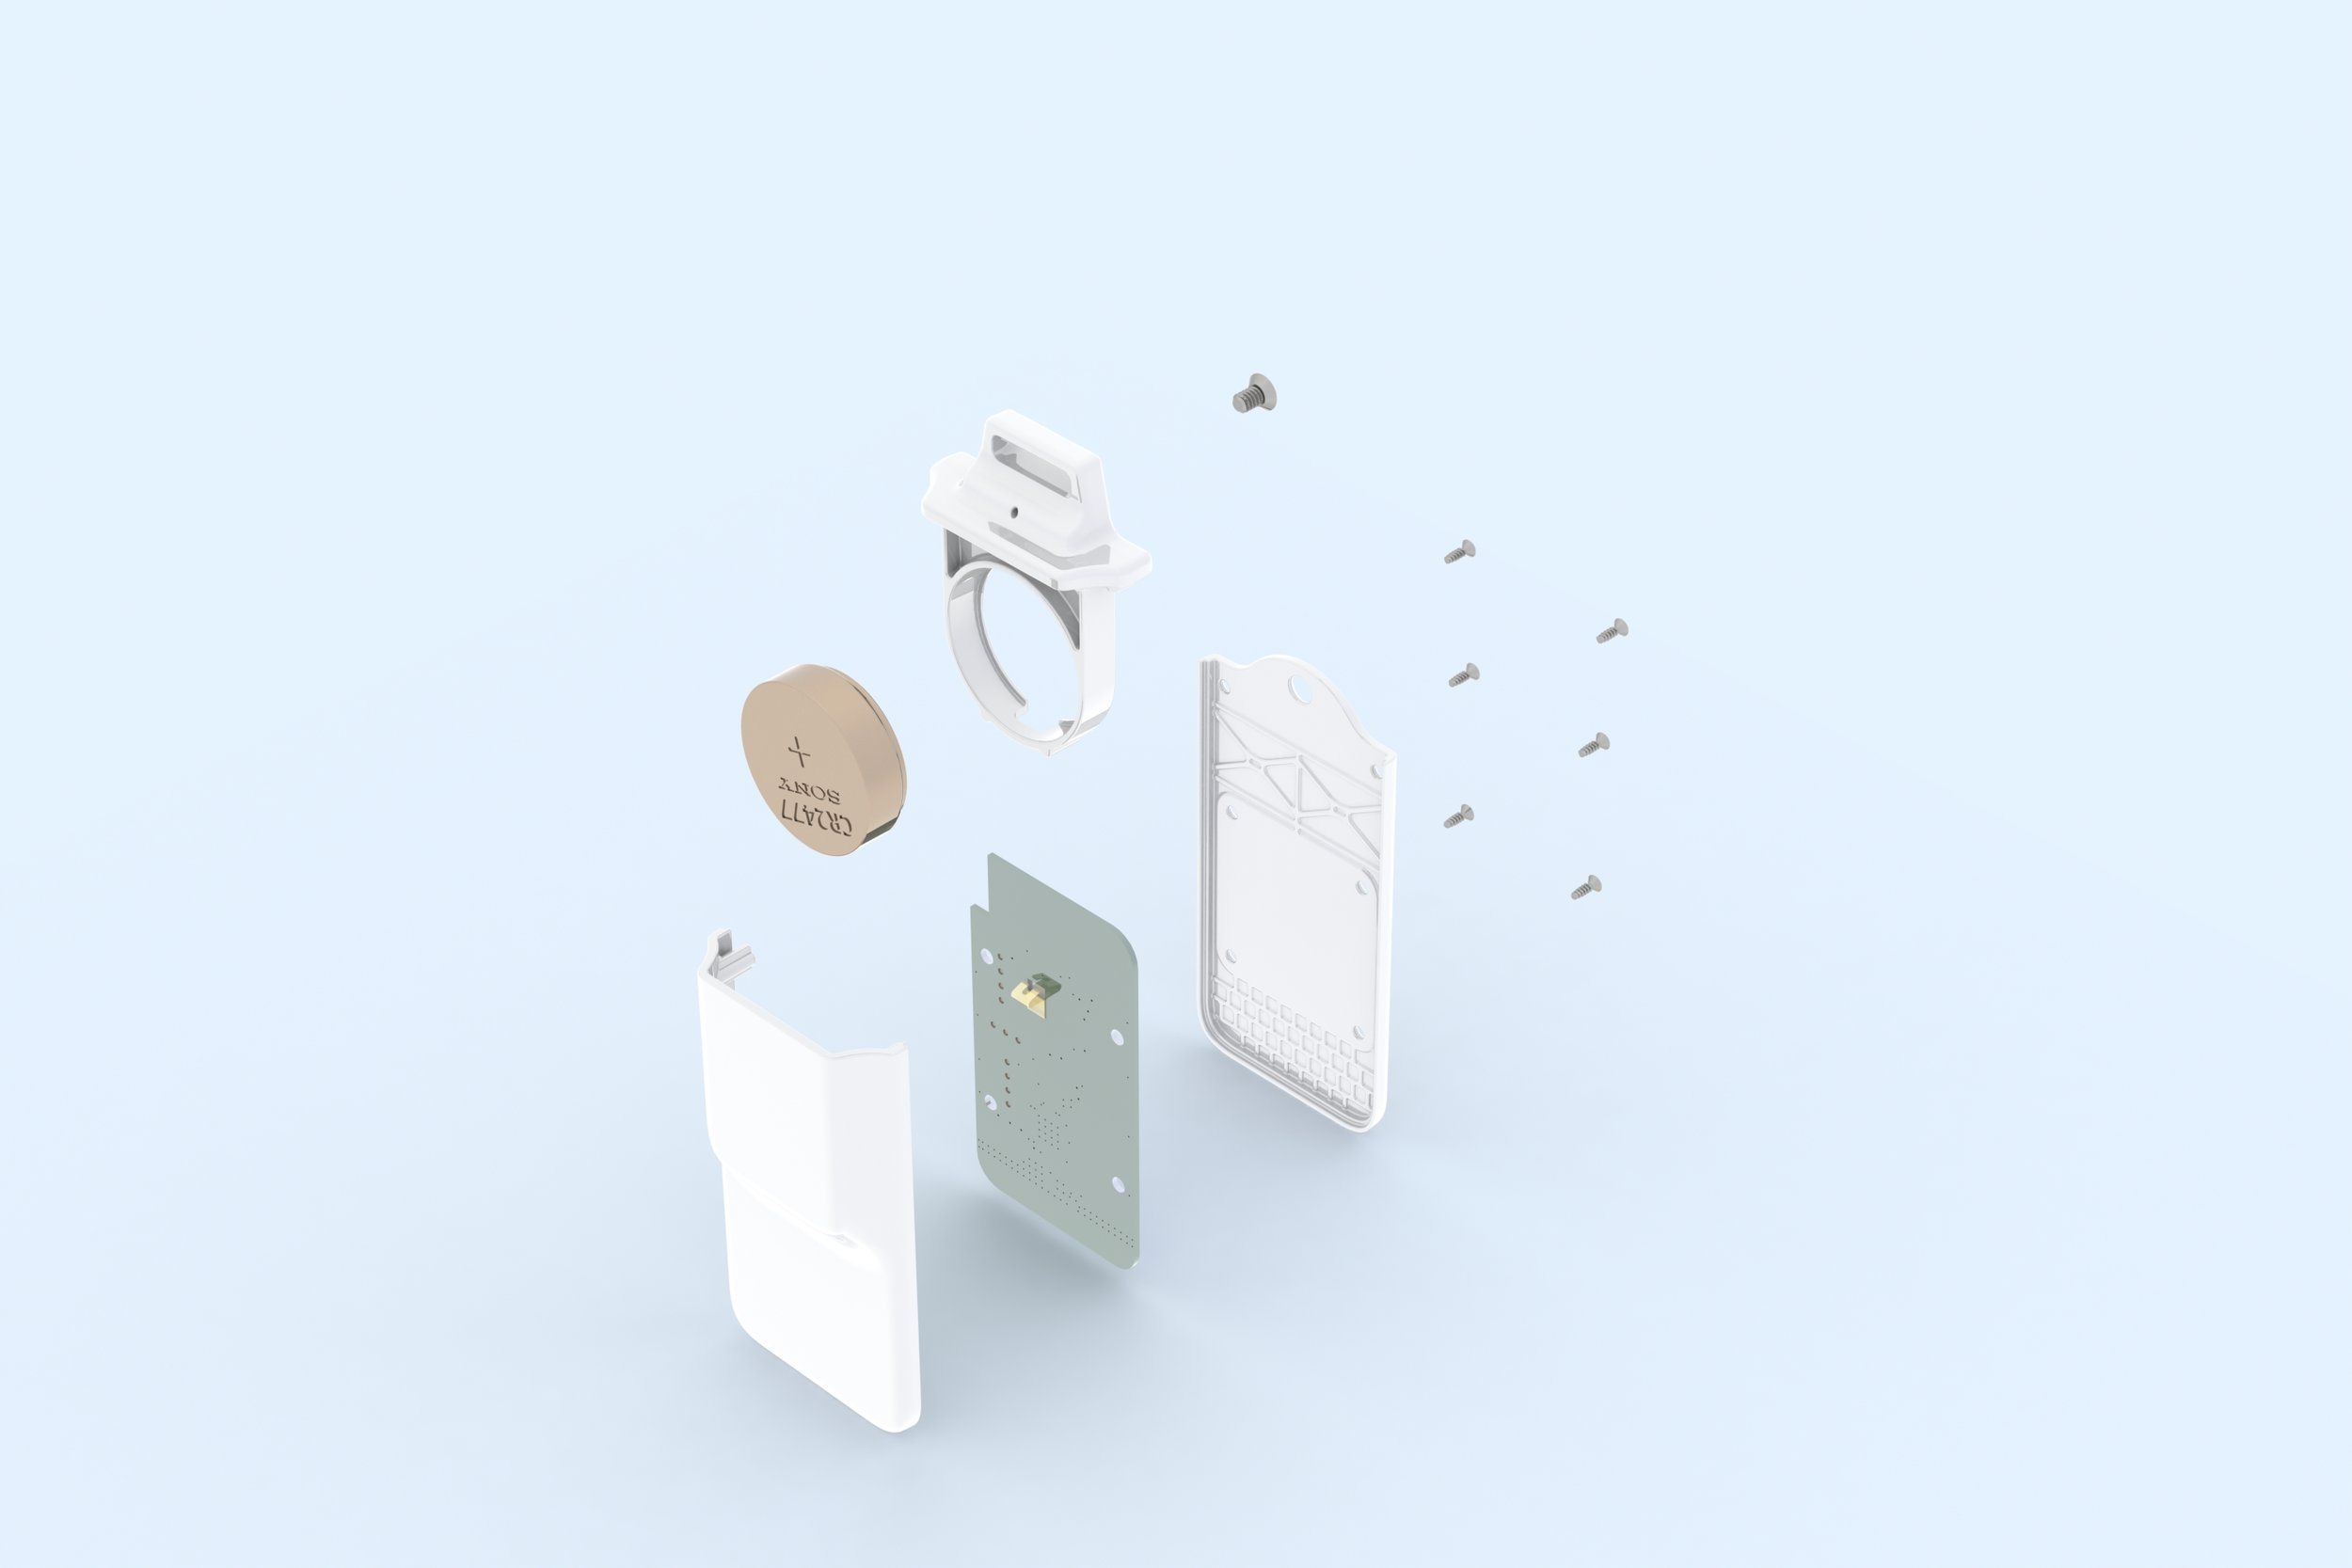 Badge - Exploded Everything - Front-Right-Top Isometric - Render.JPG